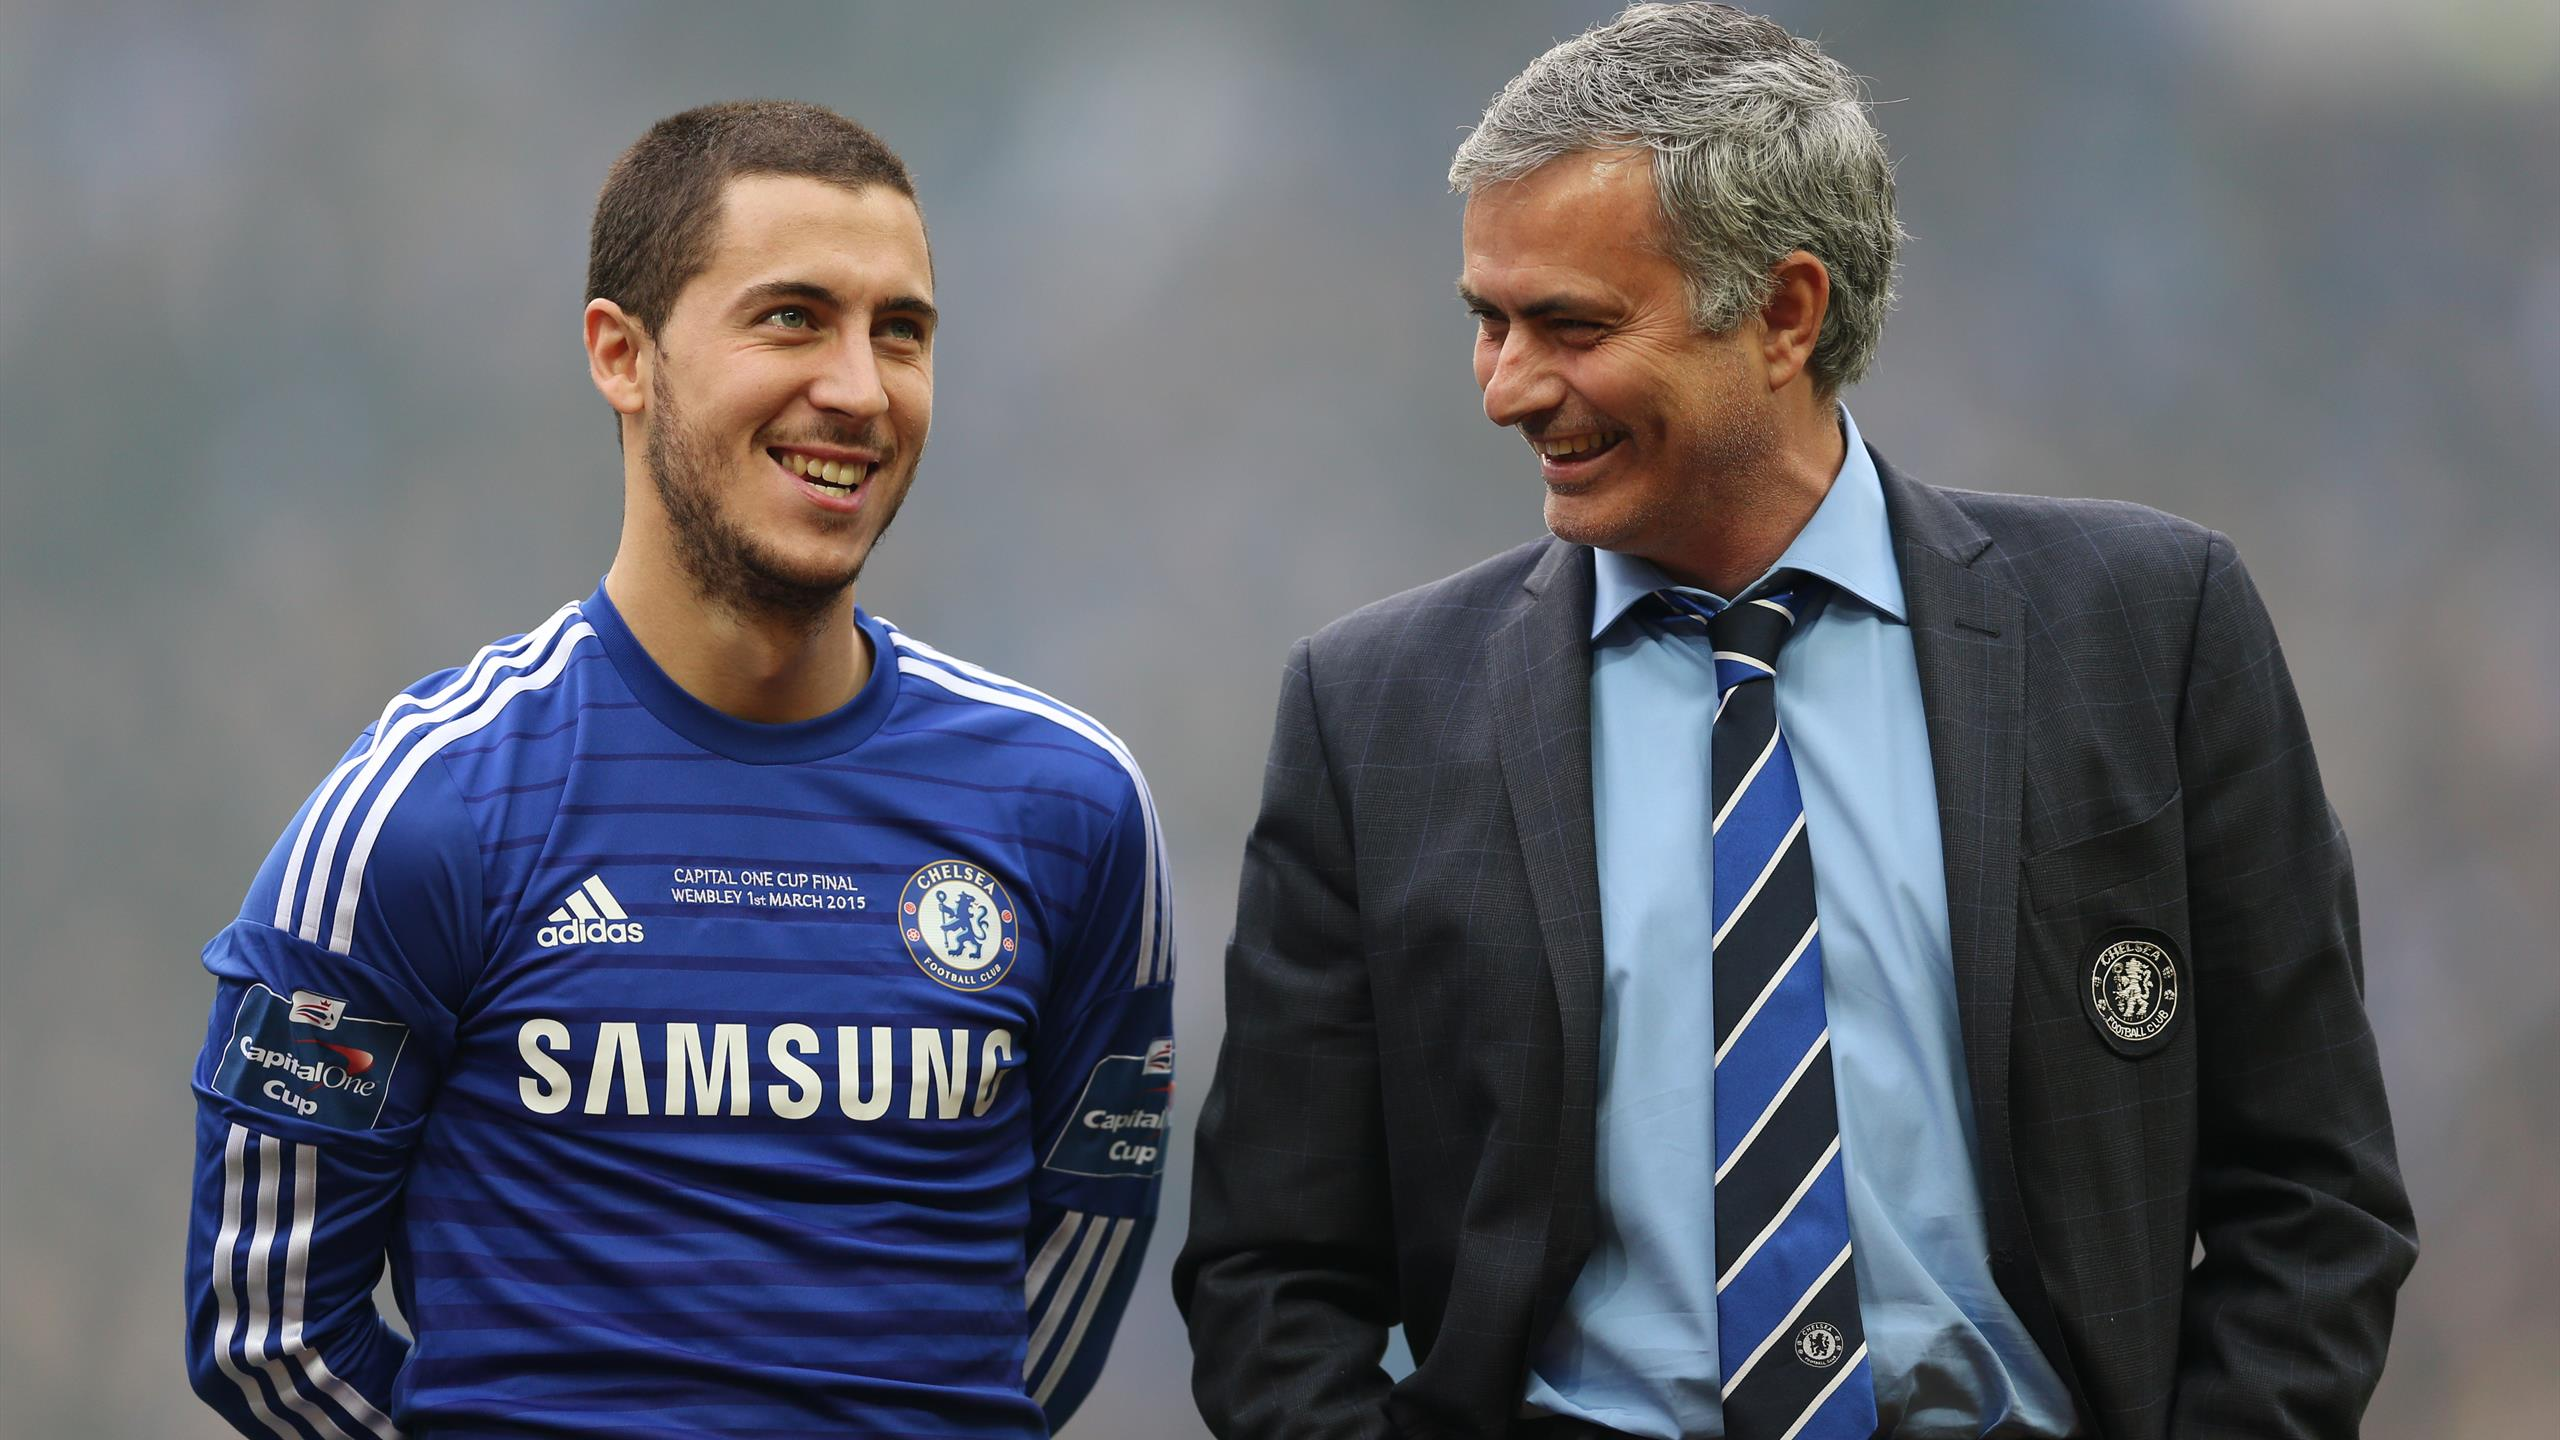 Chelsea manager Jose Mourinho and Eden Hazard